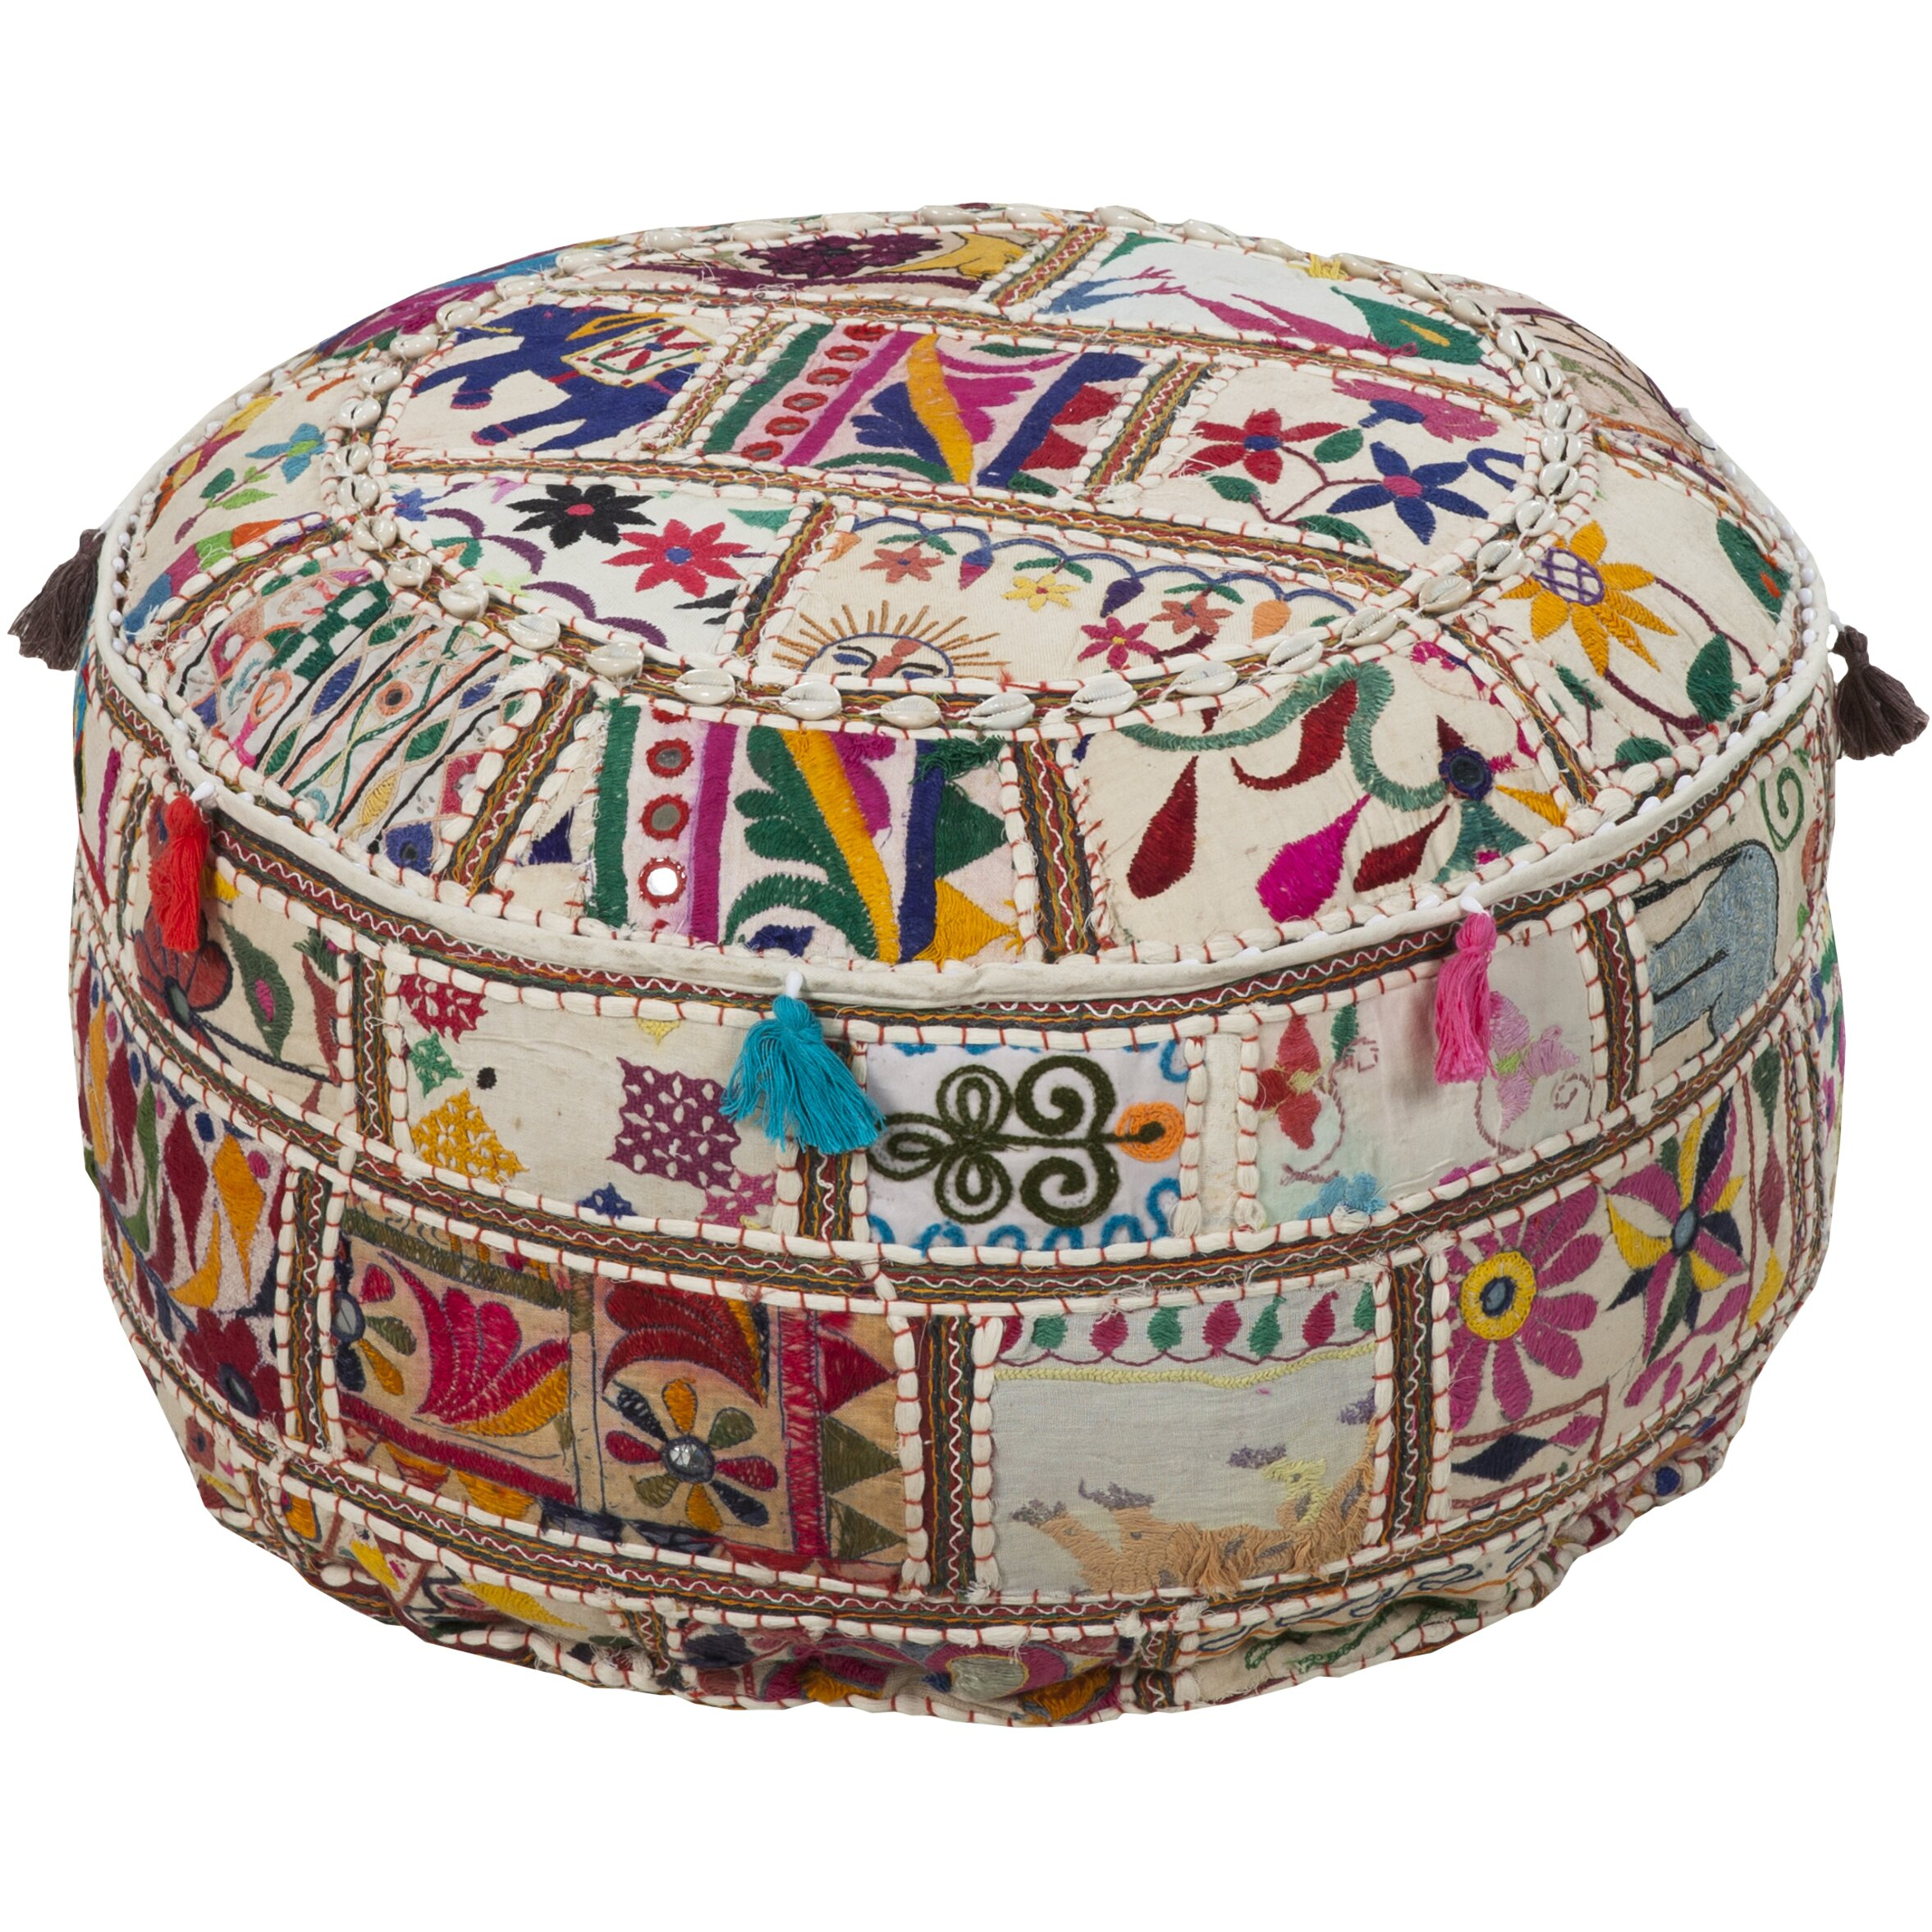 pouf archives  decor at home - pouf ottoman by surya